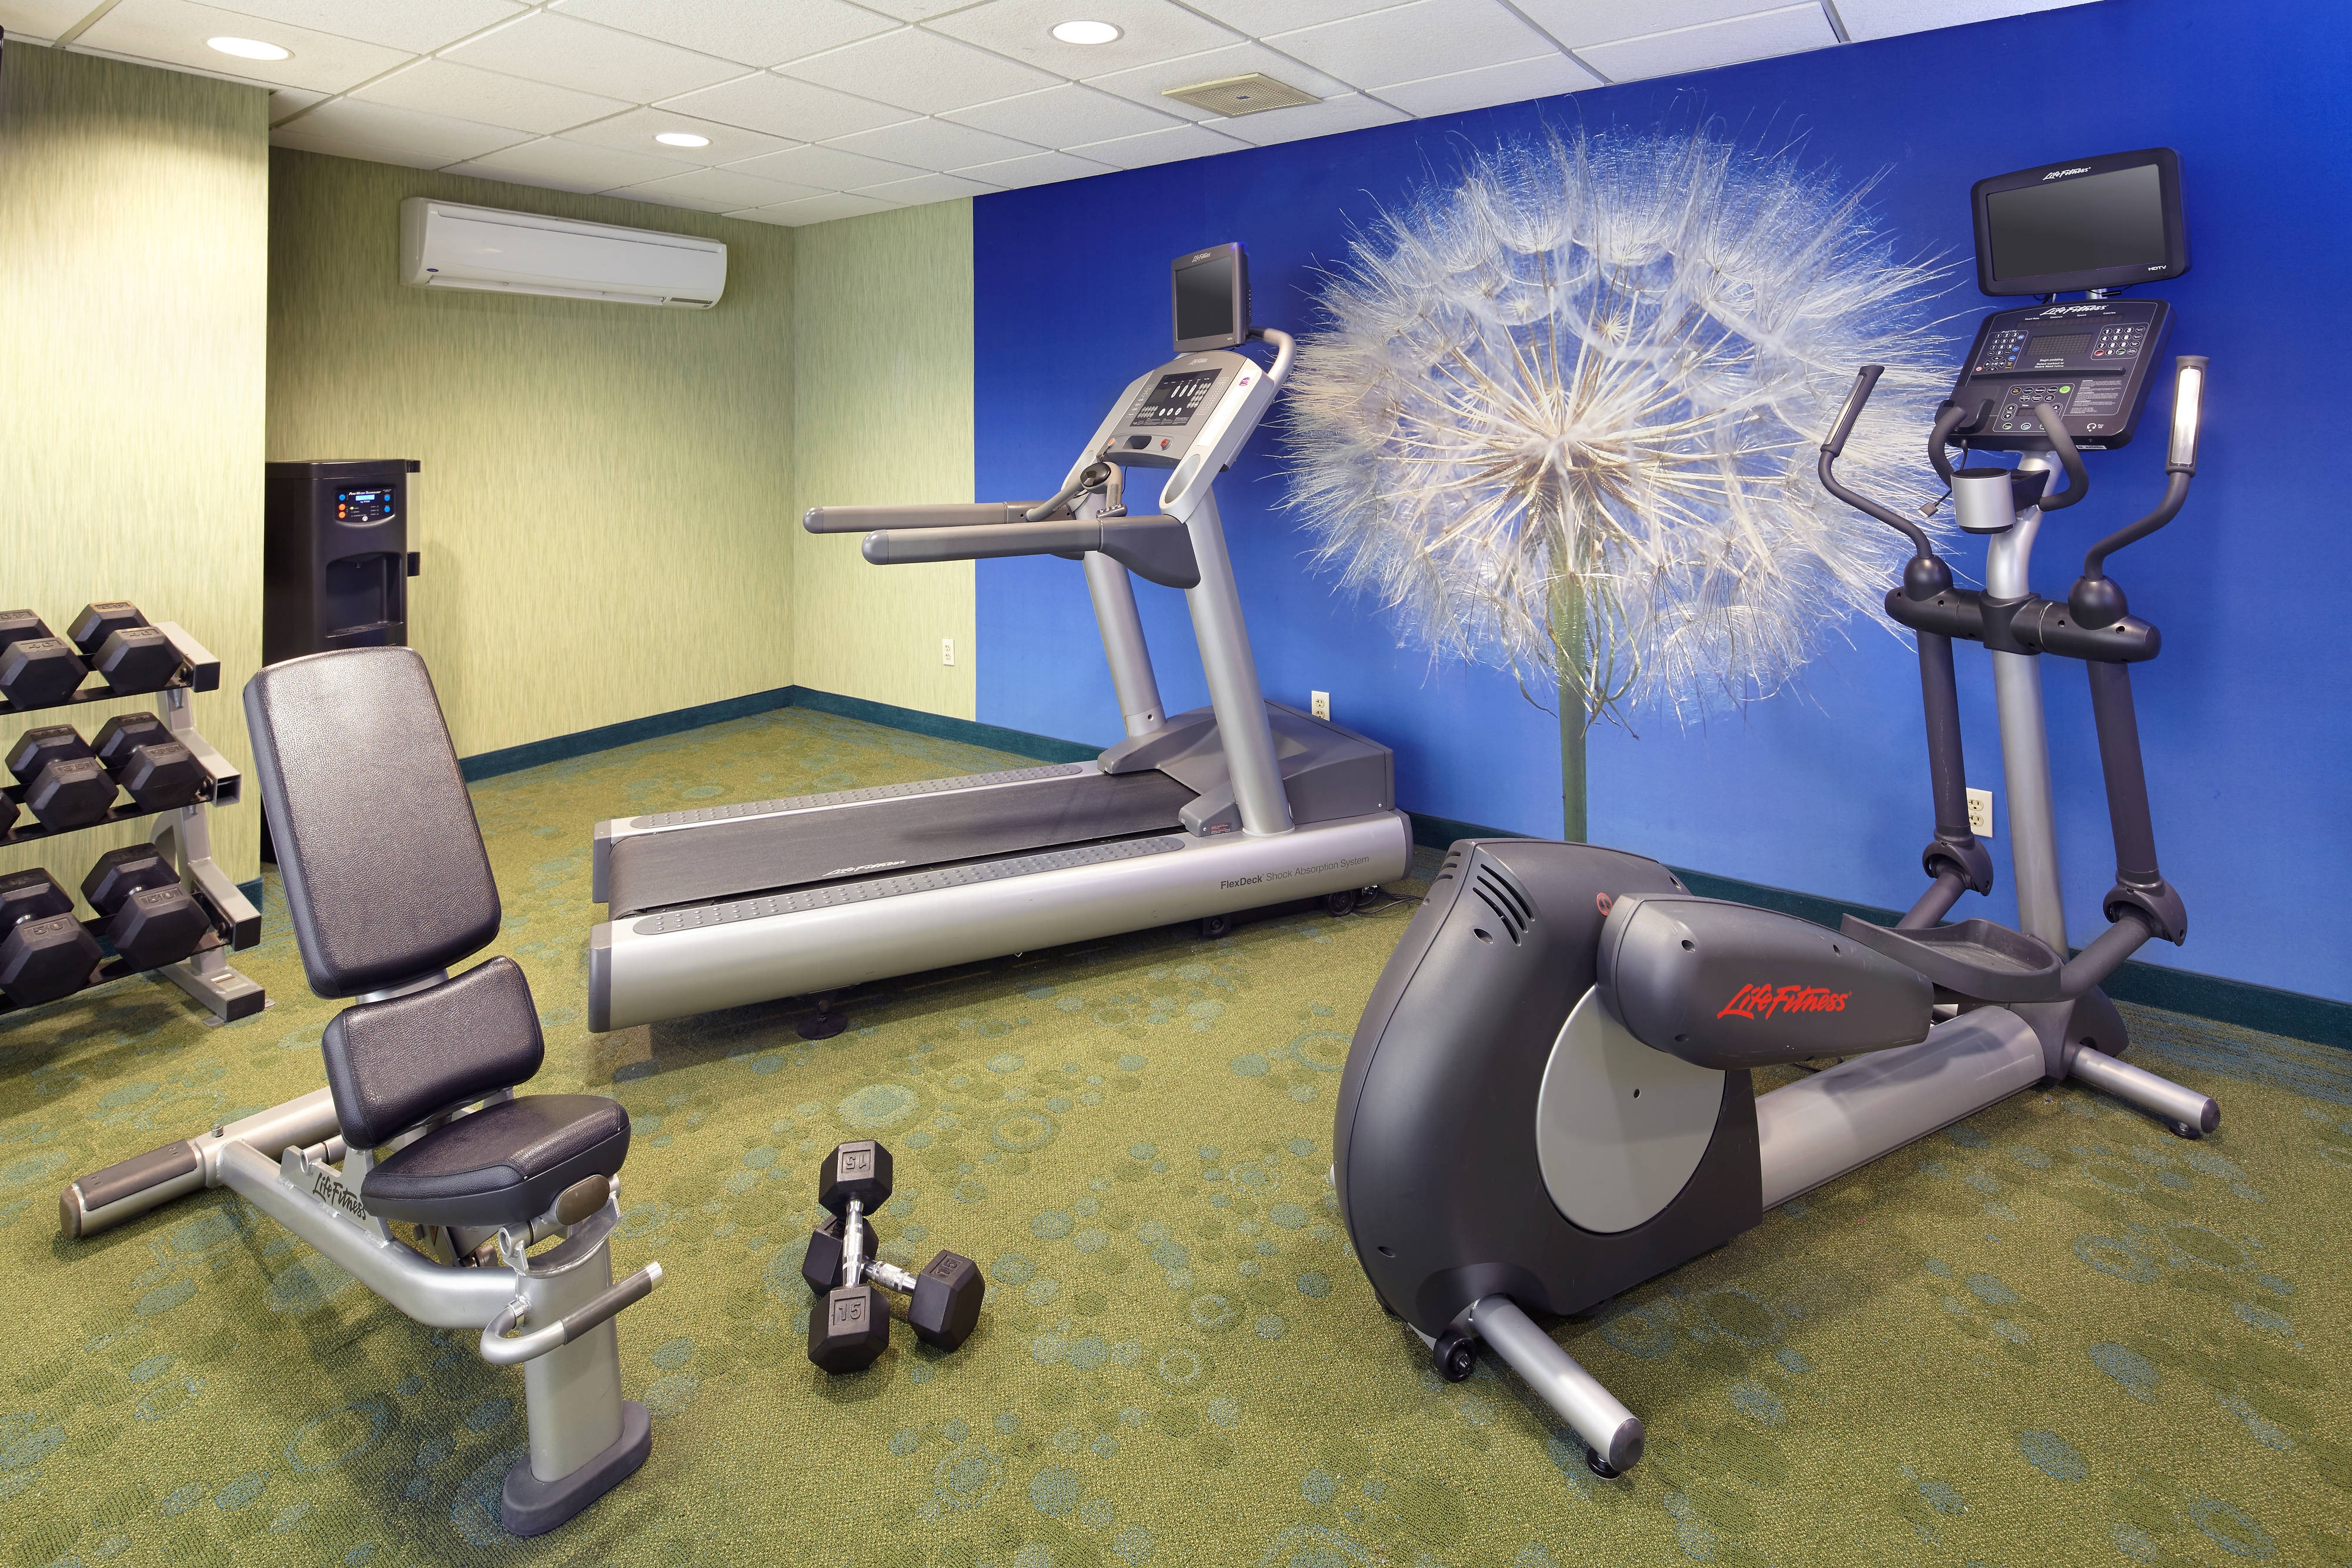 pittsburg airport hotel fitness center